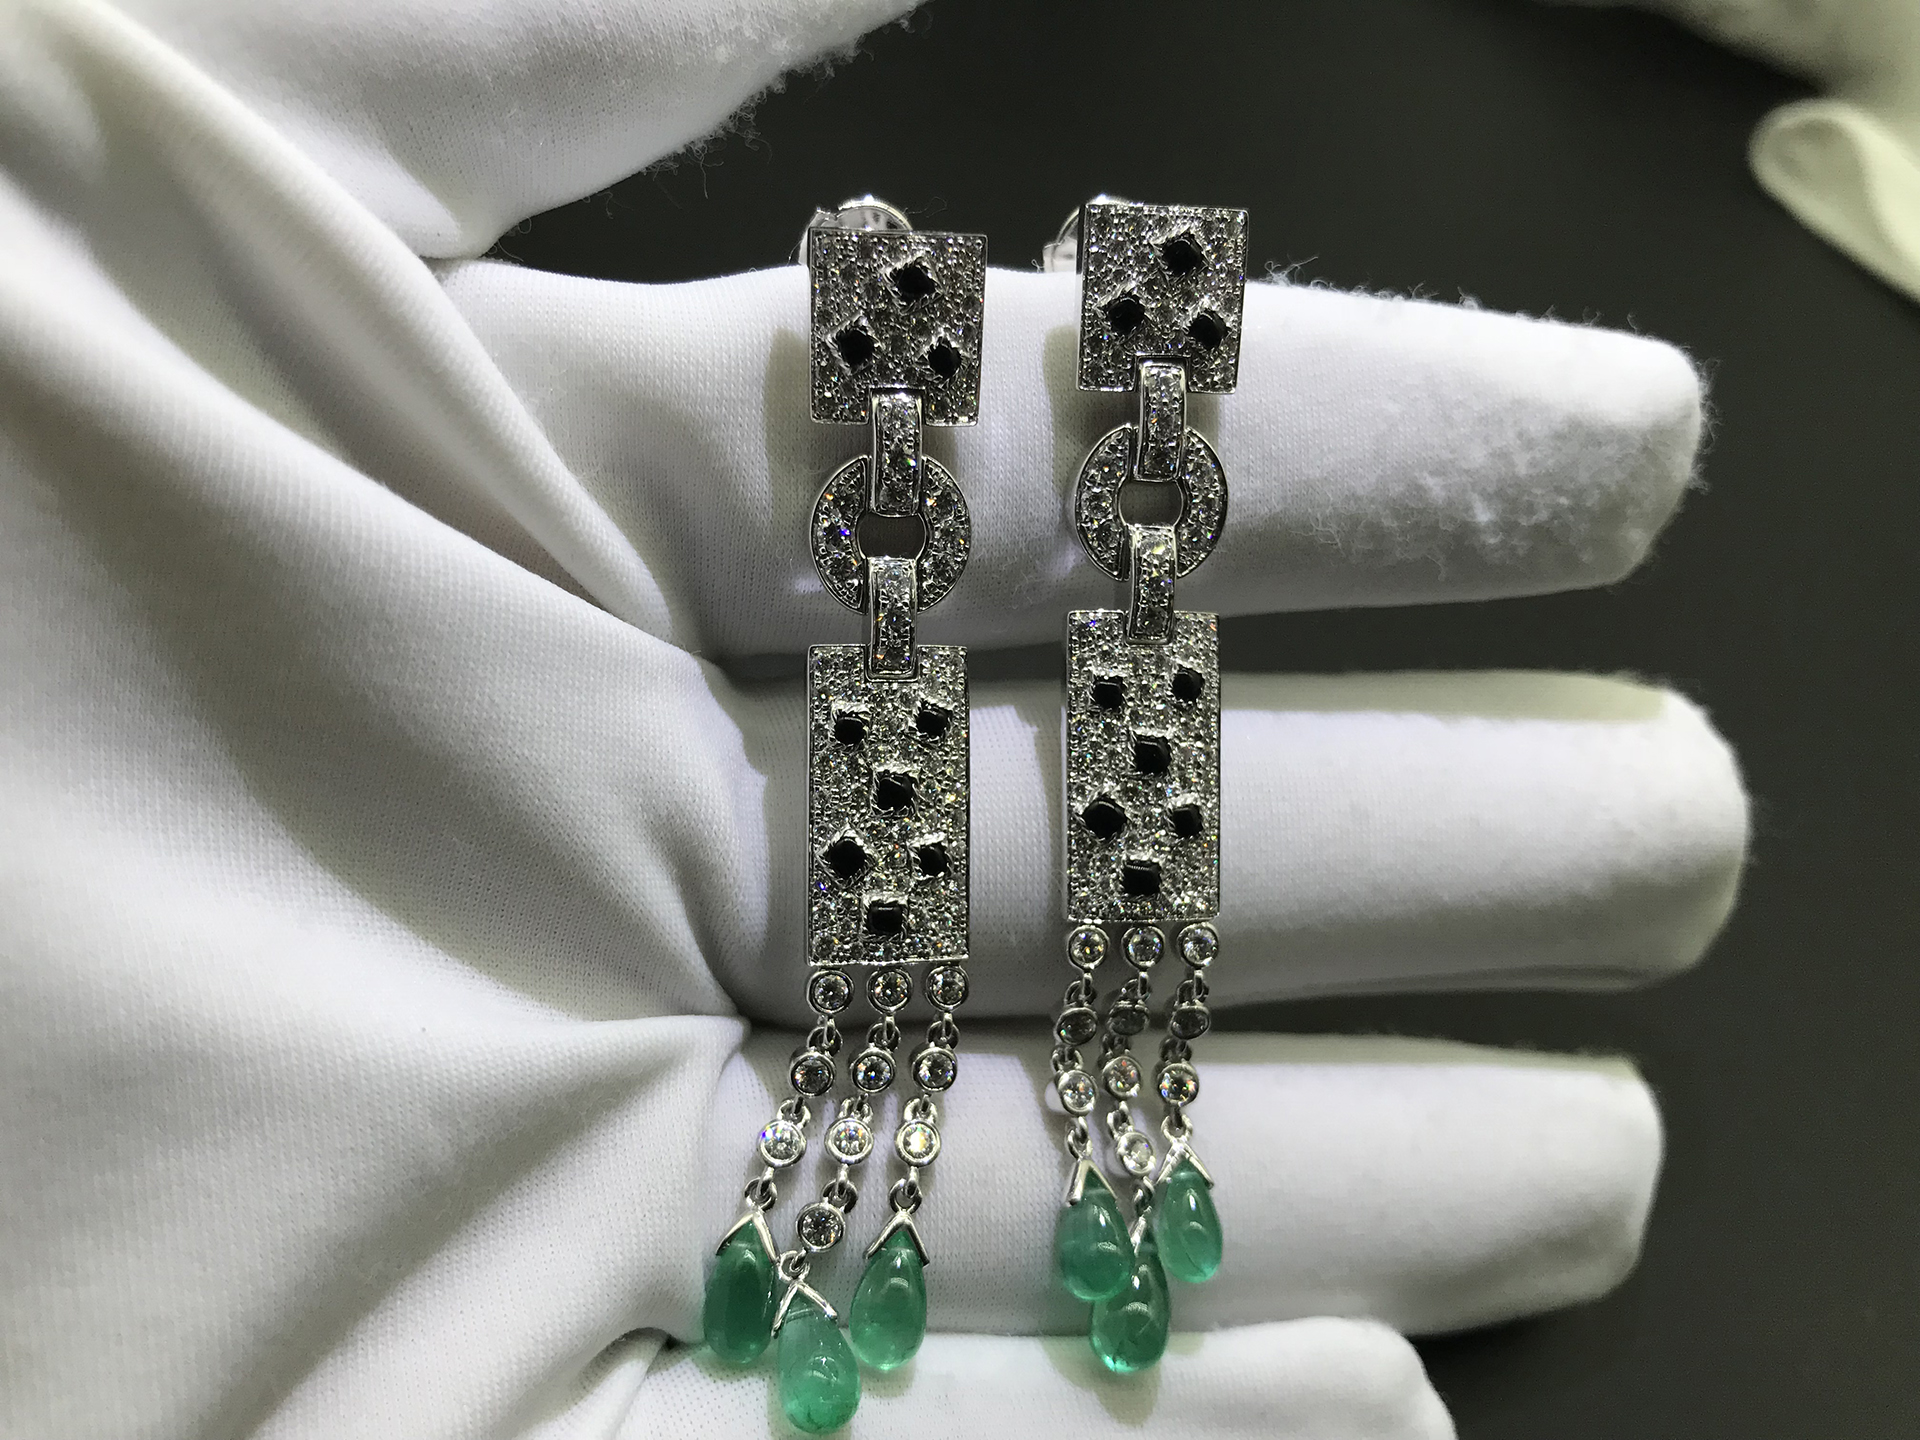 Inspired Panthère de Cartier earrings 18K white gold with diamond and emerald